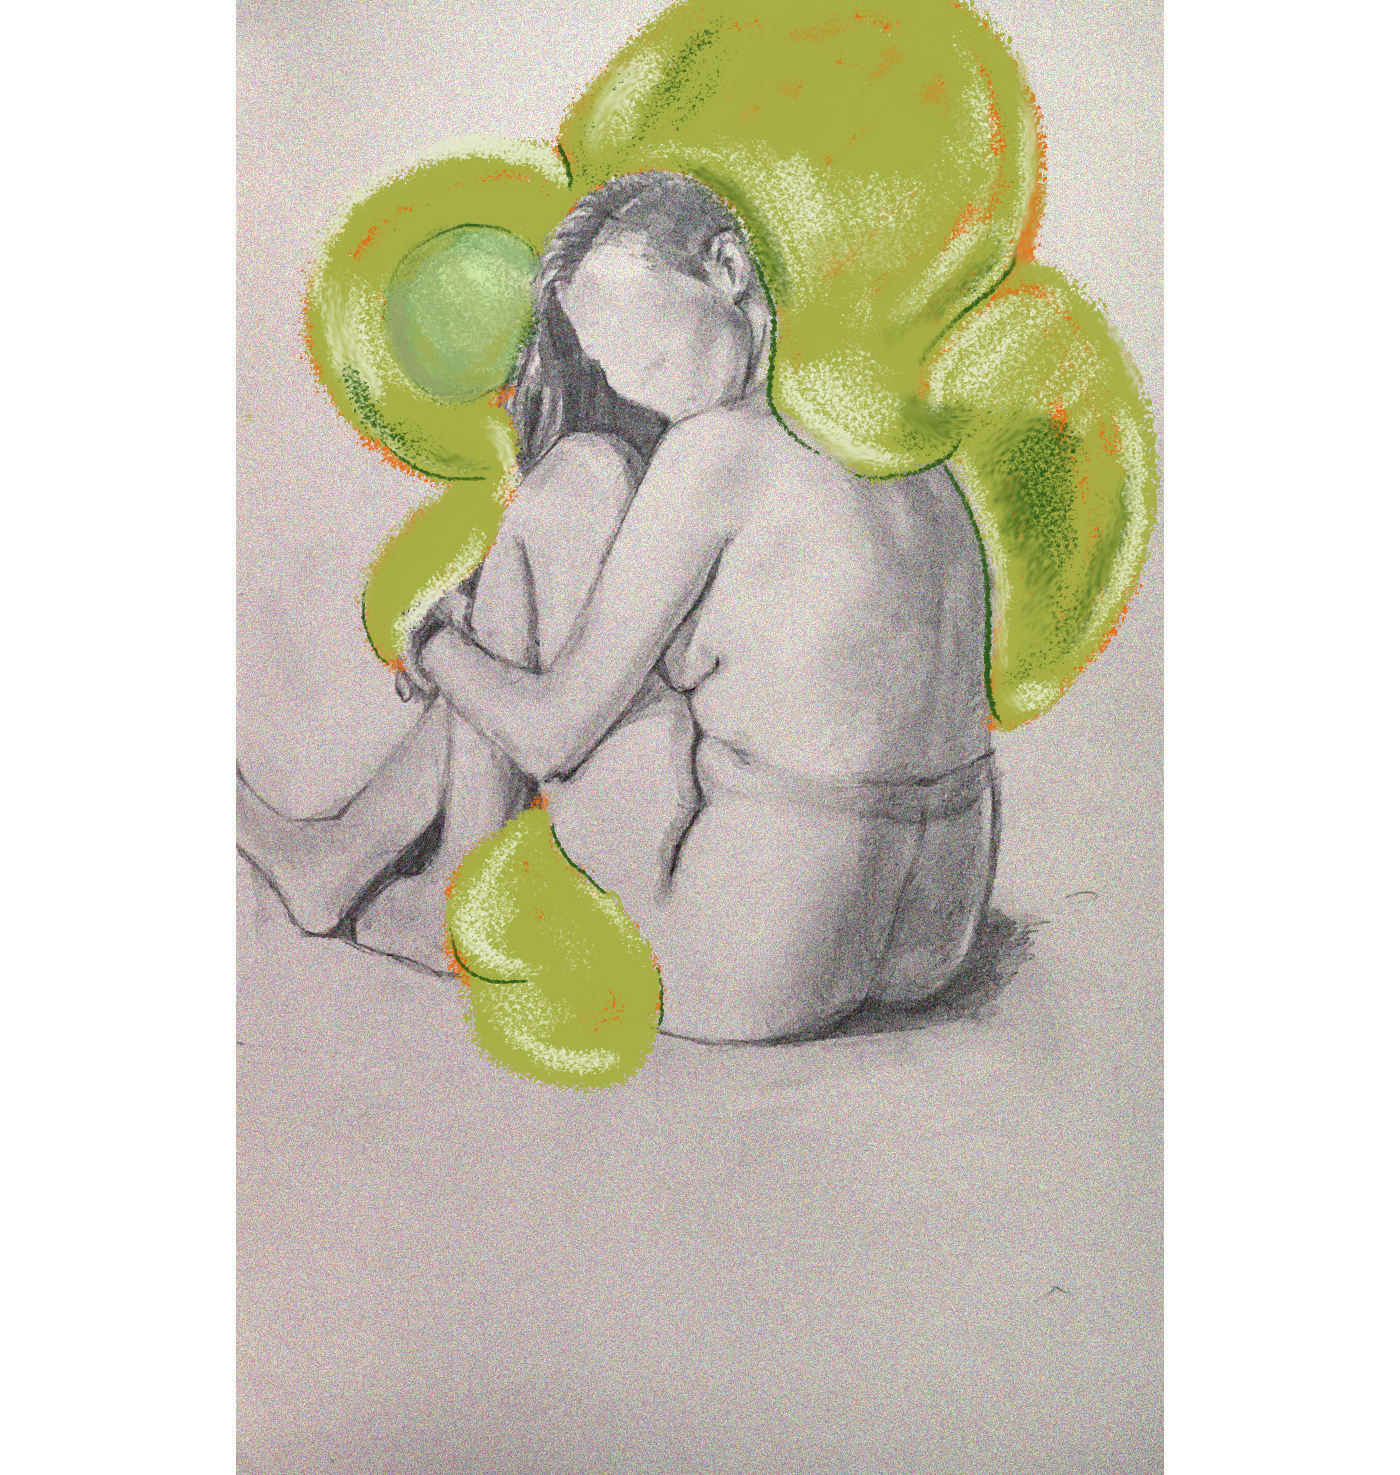 composition digital painting green mental health monster nude portrait woman